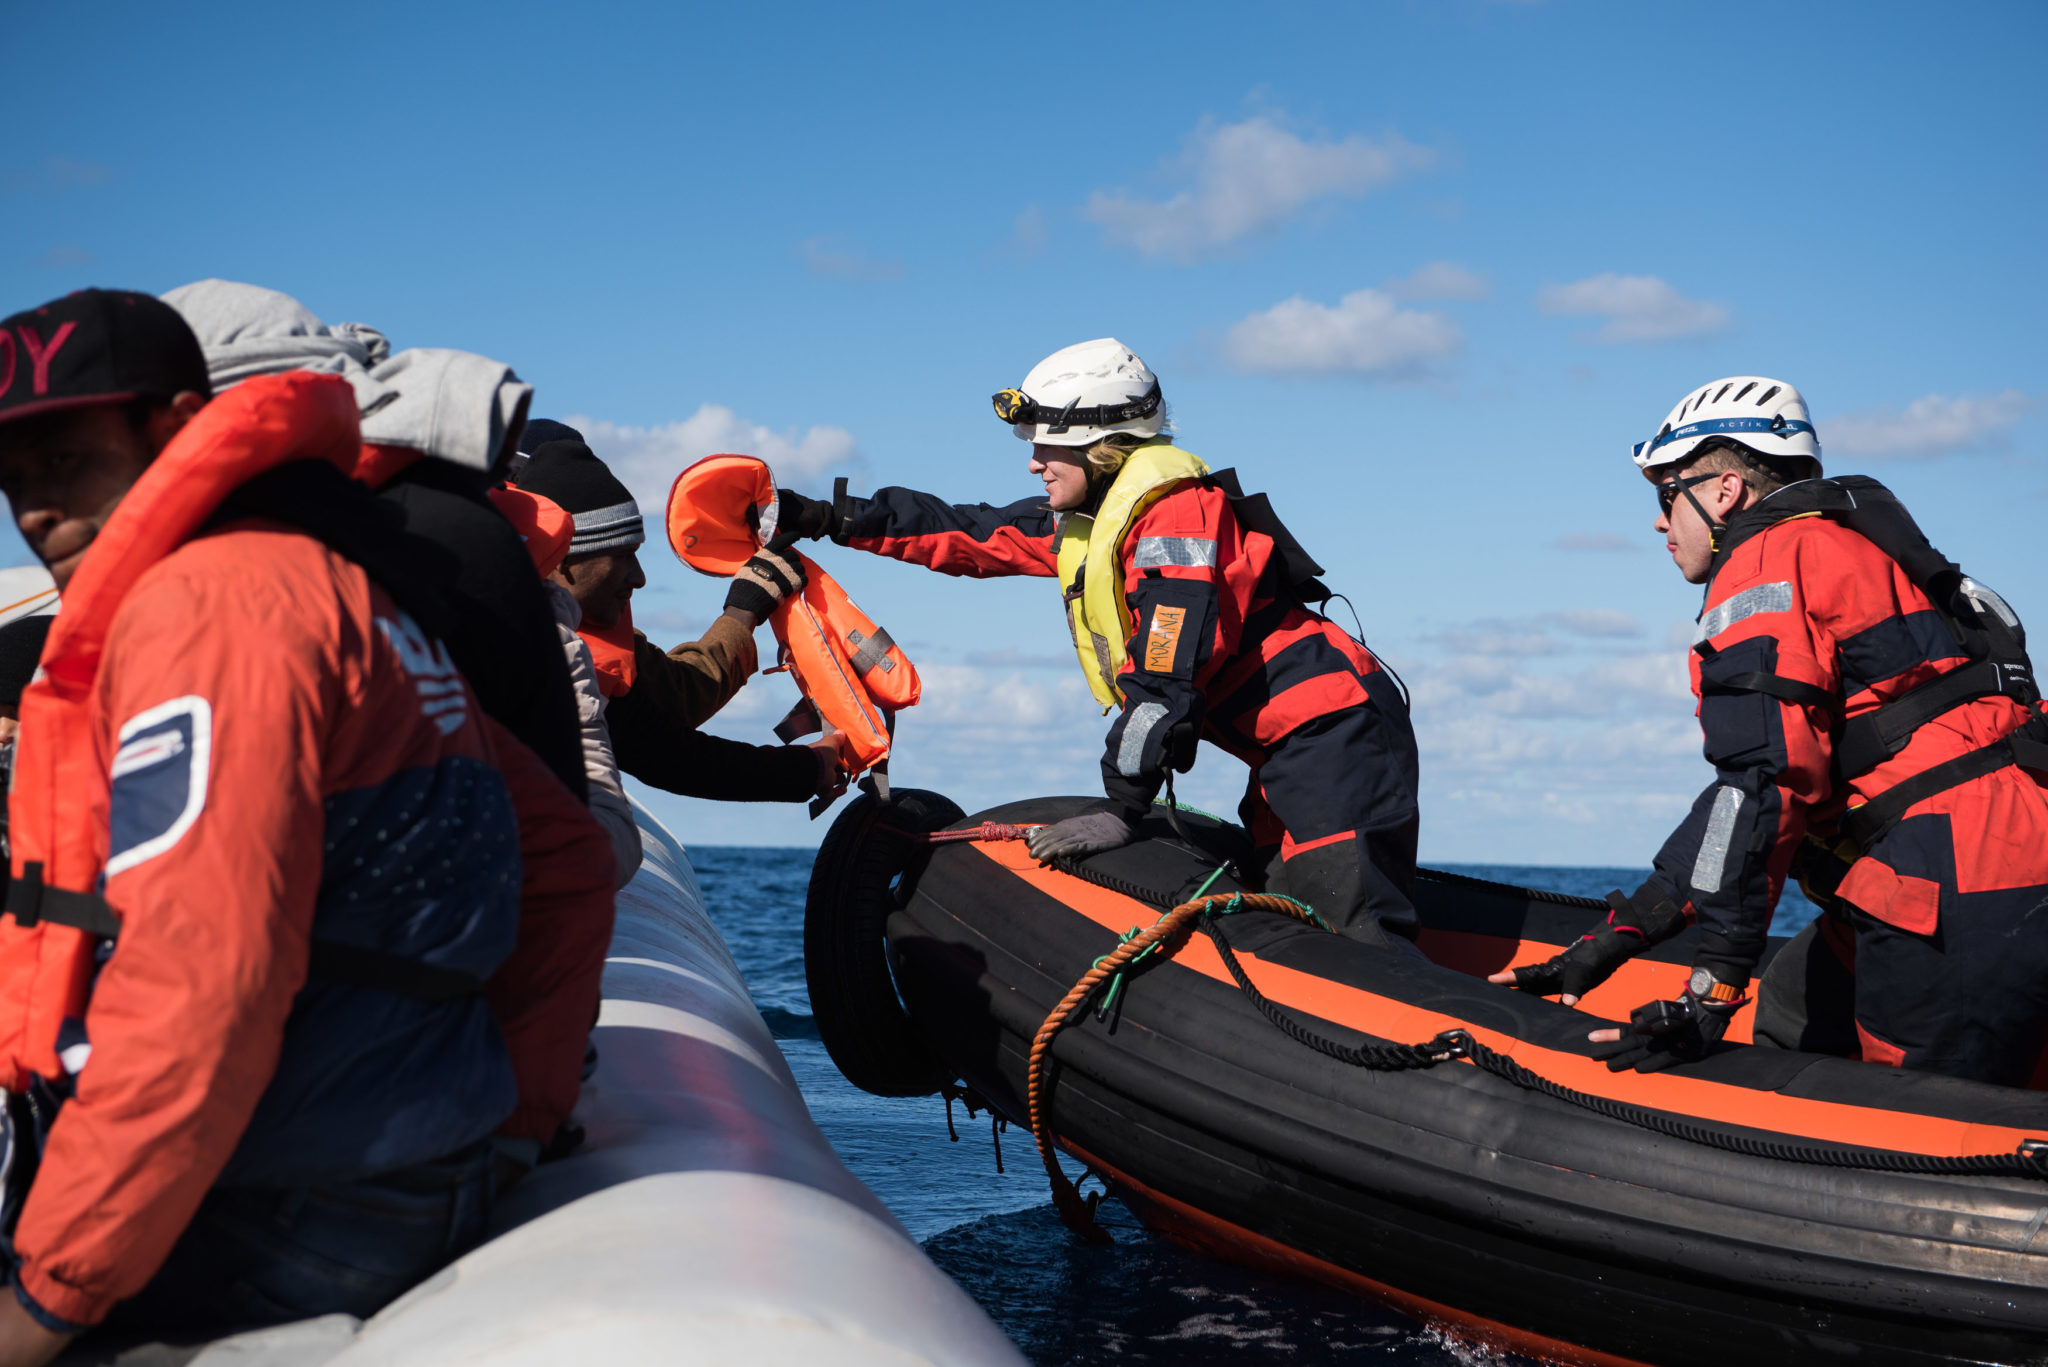 Italy: Sea-Watch 3's captain must not be prosecuted for saving lives